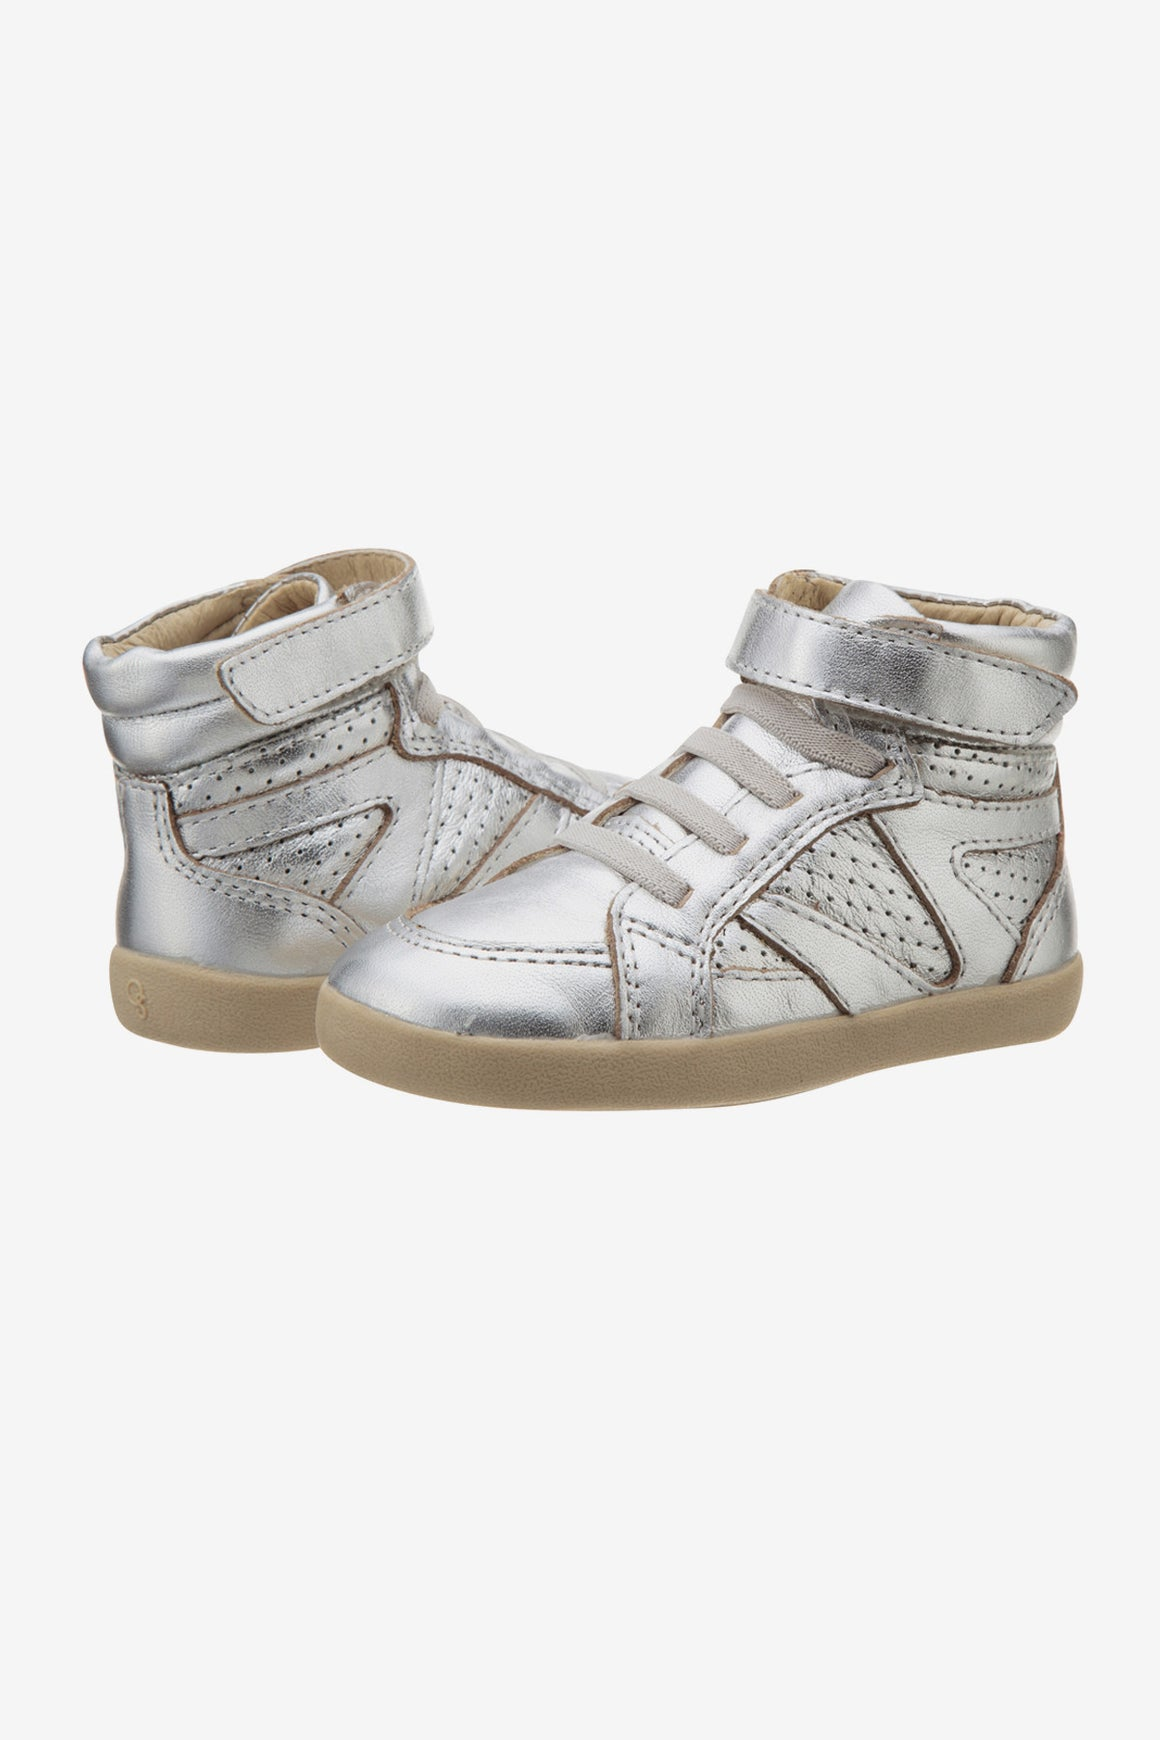 Old Soles Cheerleader High Top - Toddler